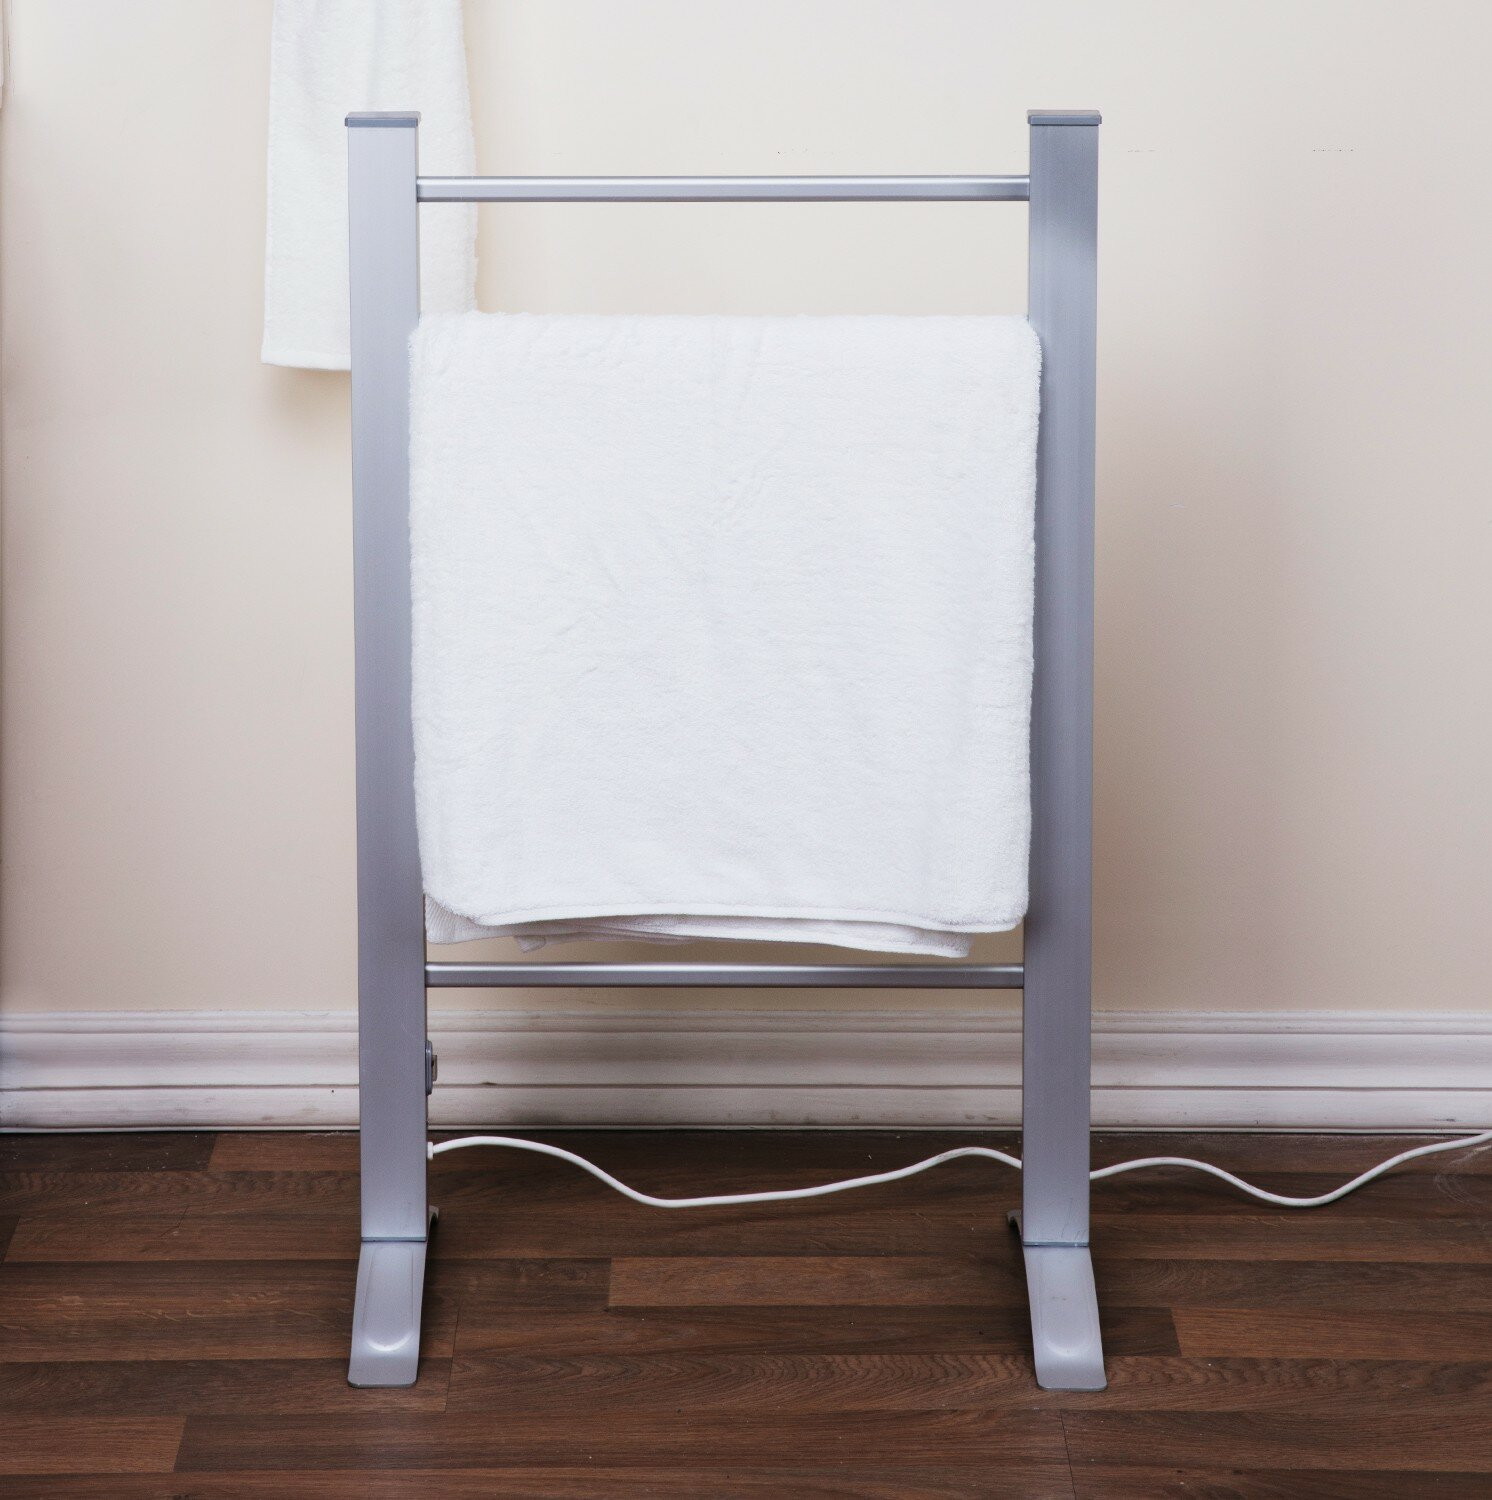 free standing towel warmer. Free Standing Towel Warmer E